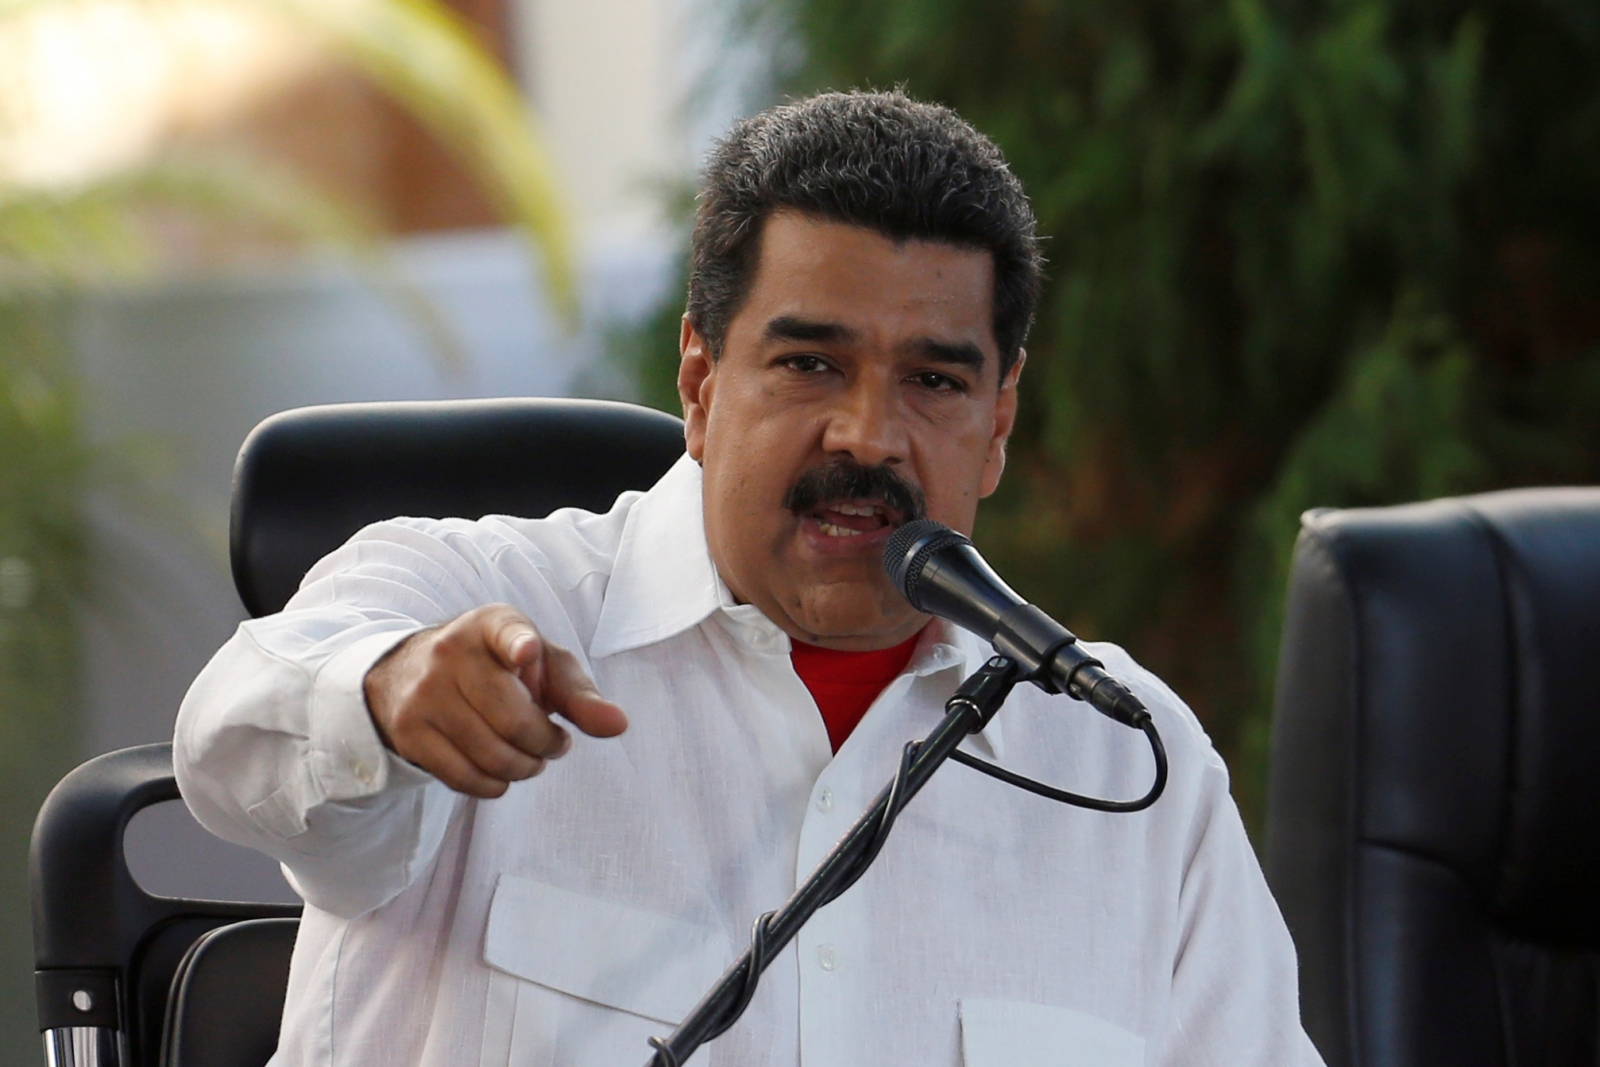 Nations to Urge Venezuela to Revive 'Democratic Normality'